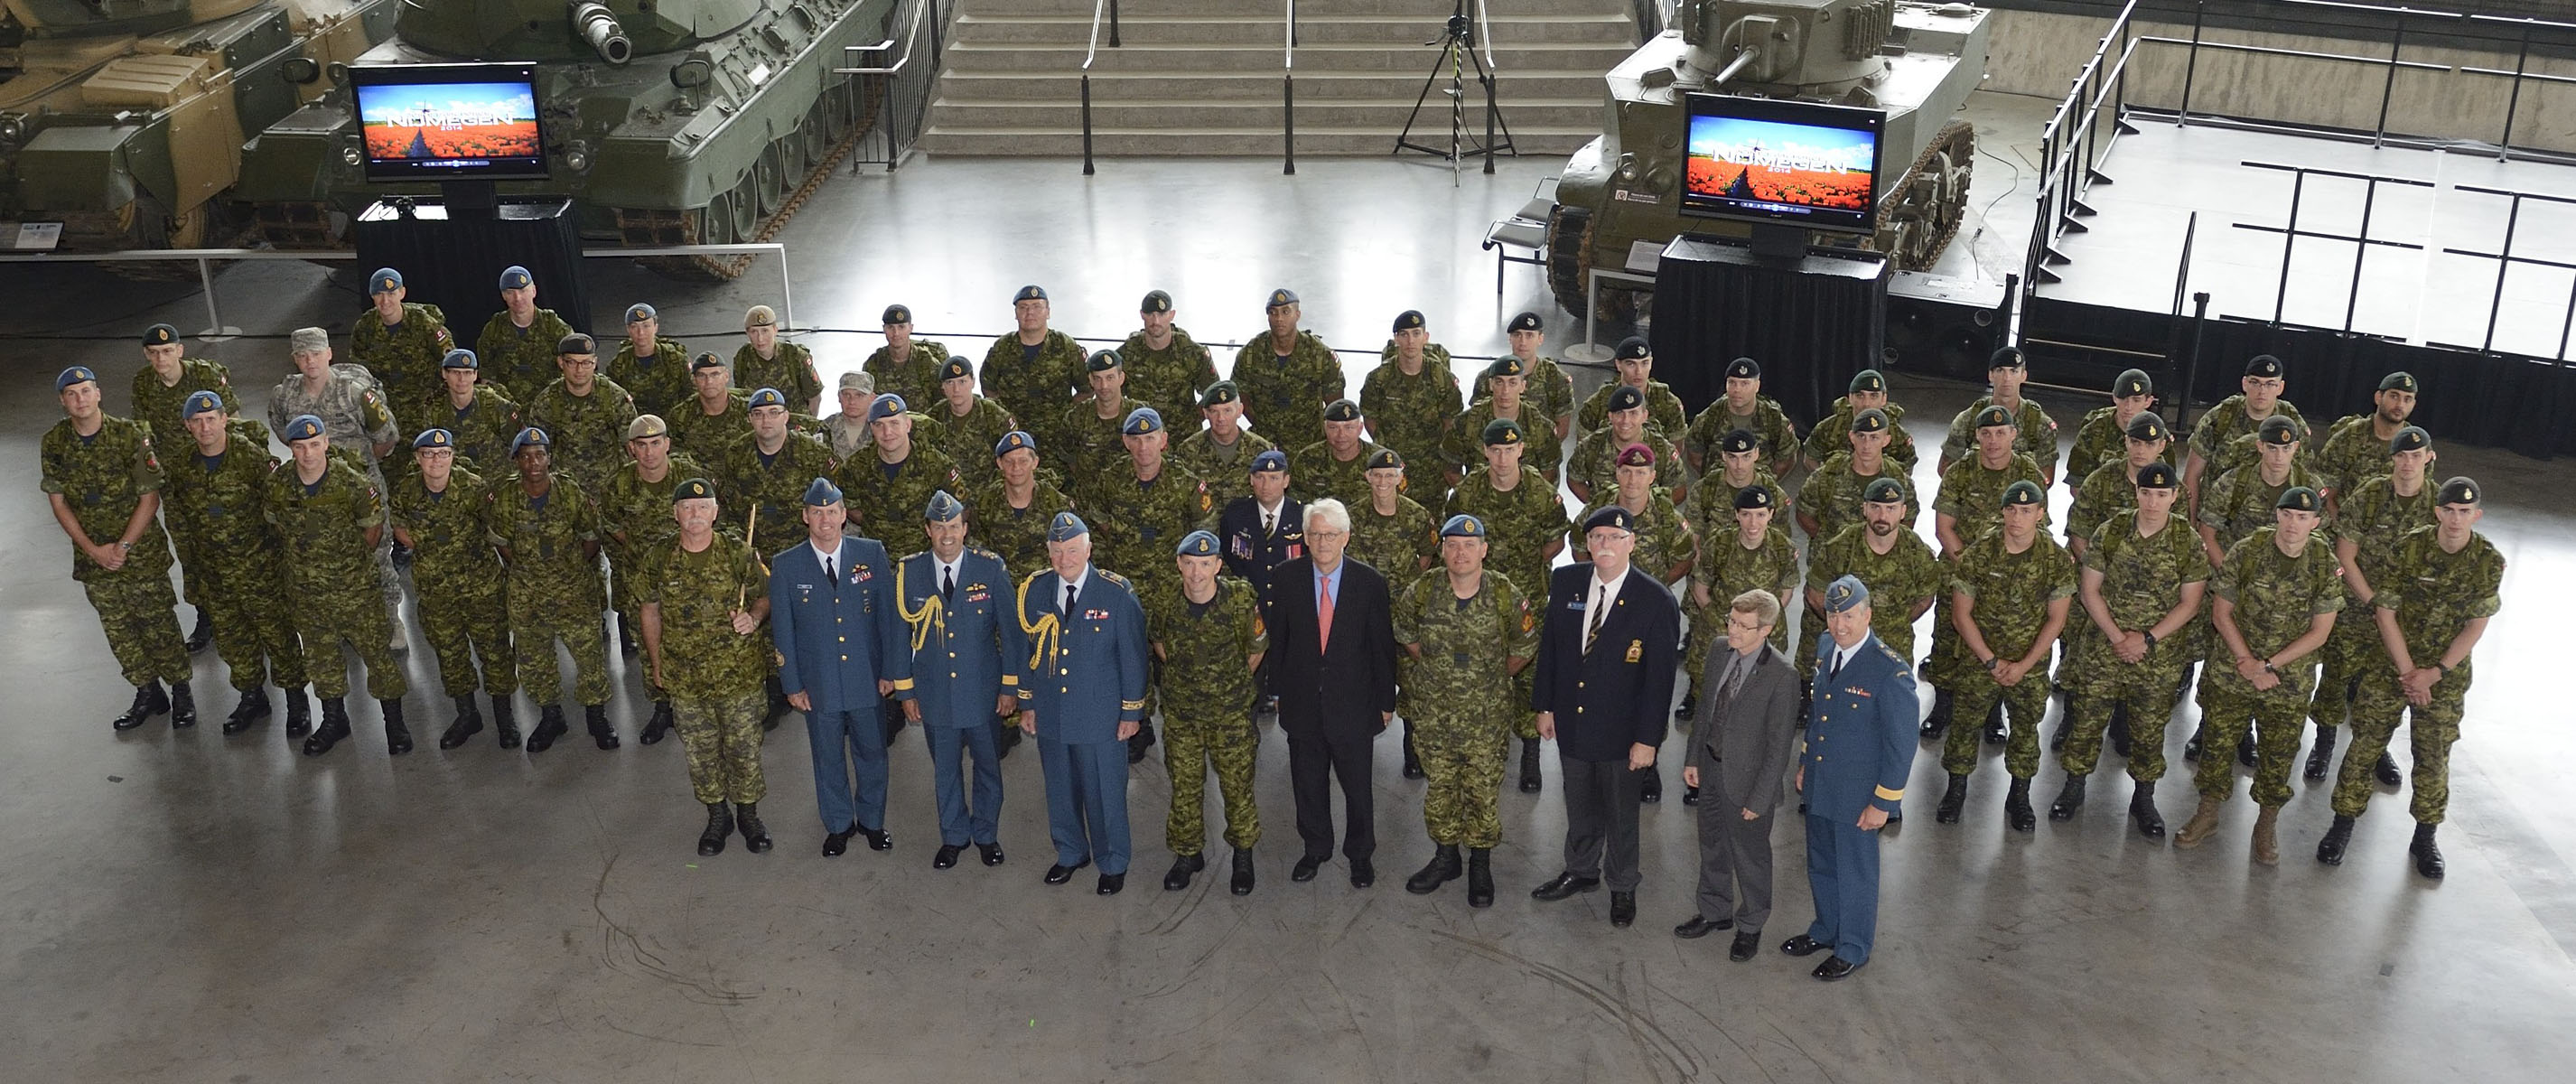 Group photo with His Excellency, dignitaries in attendance and members of the CAF contingent.